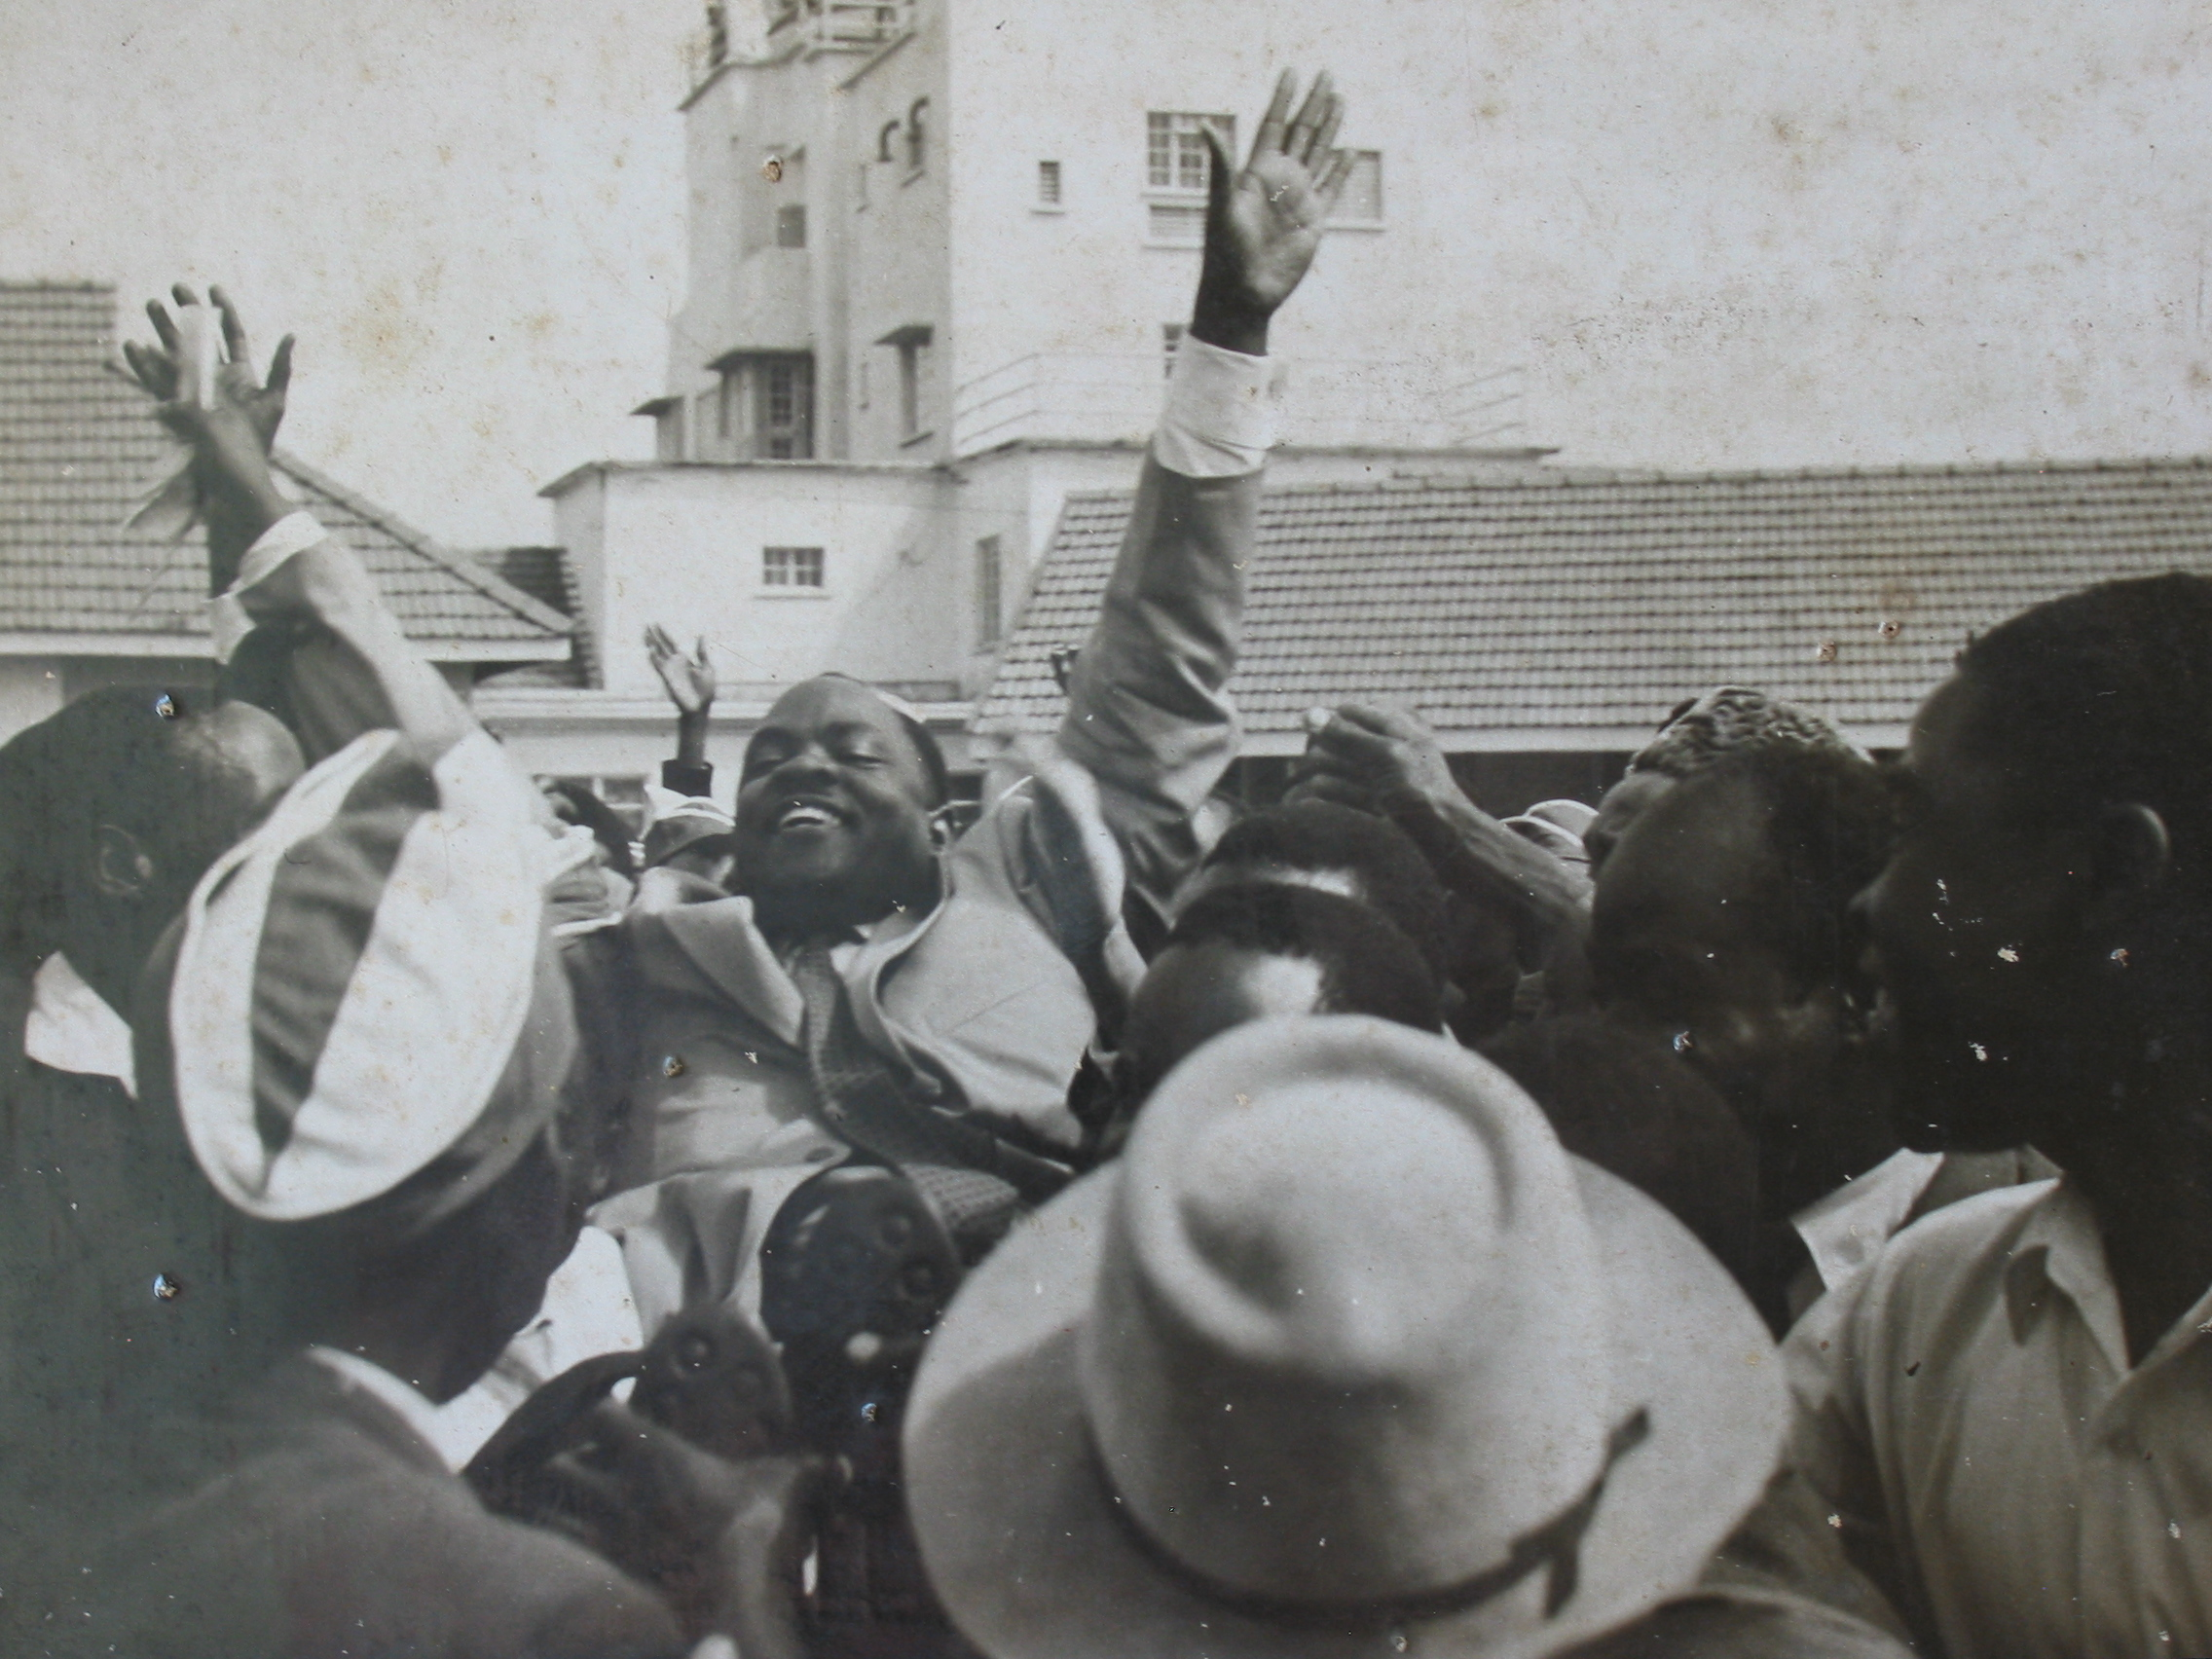 Source: Shortly following the election that secured the Democratic Party's electoral victory; Benedicto Kiwanuka became Uganda's first elected prime minister, 1961 (BK Private Papers).